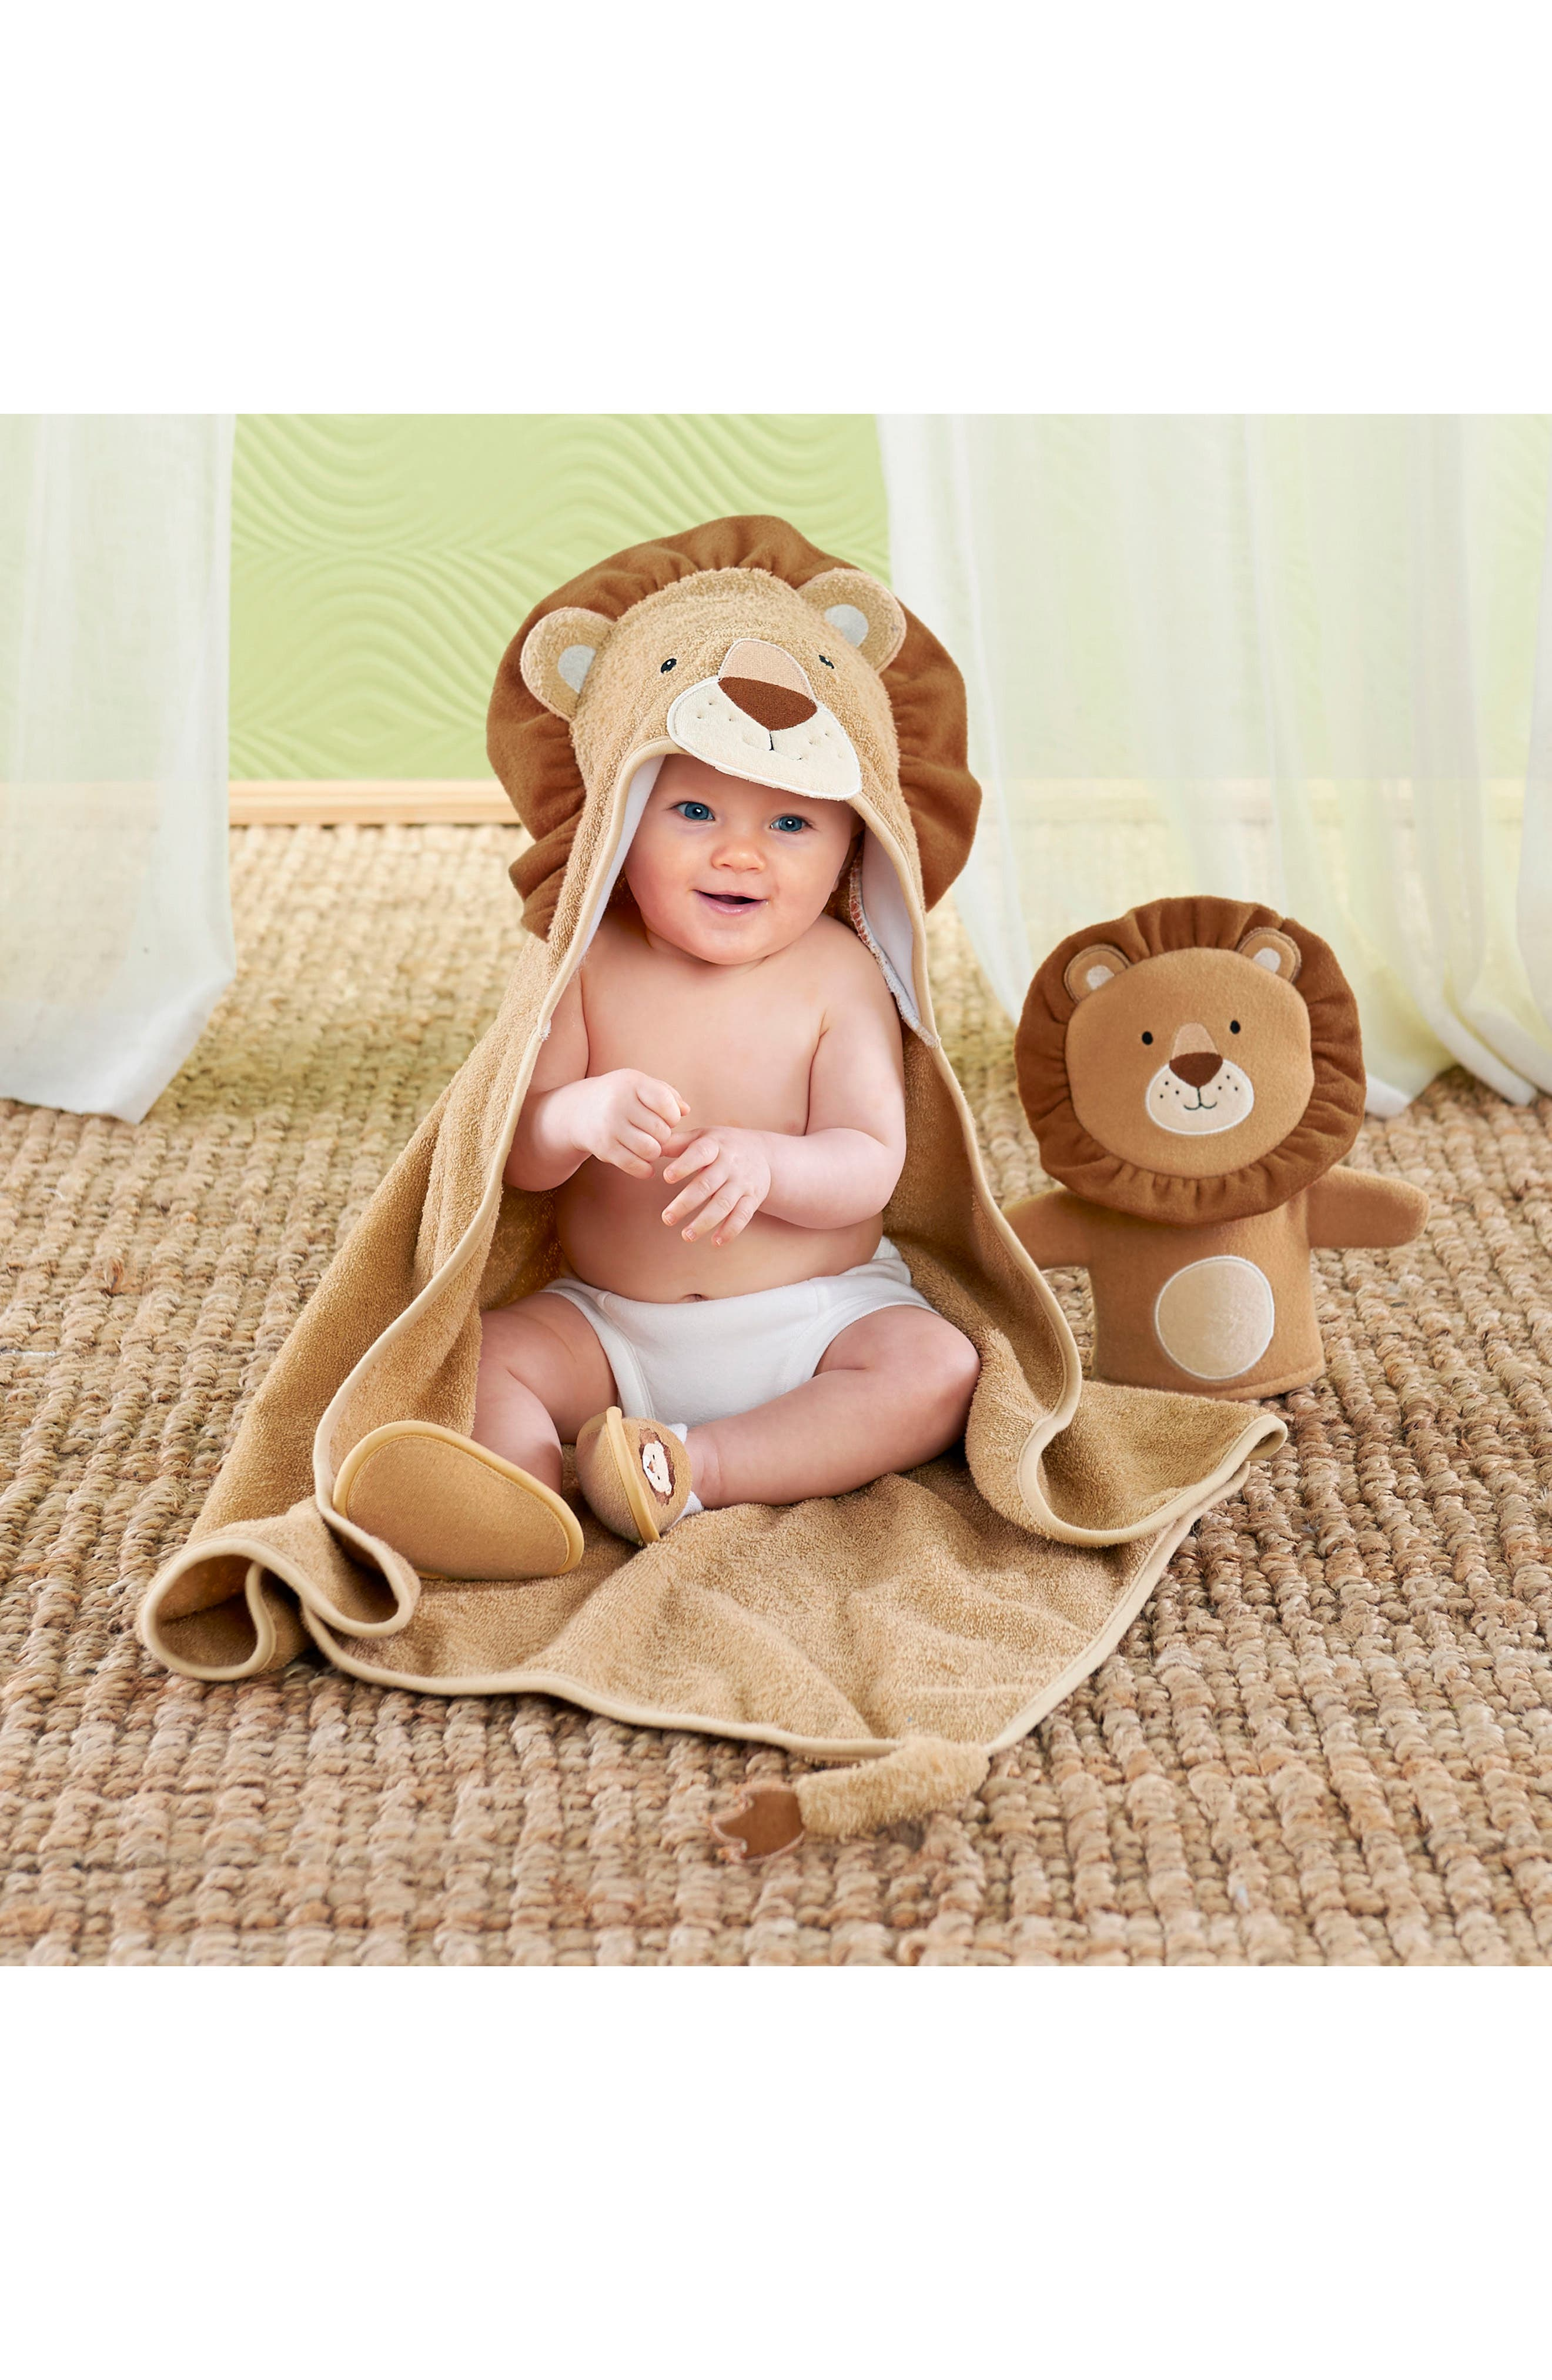 Lion Hooded Robe, Bath Mitt & Slippers Set,                             Alternate thumbnail 2, color,                             TAN, BROWN AND BEIGE